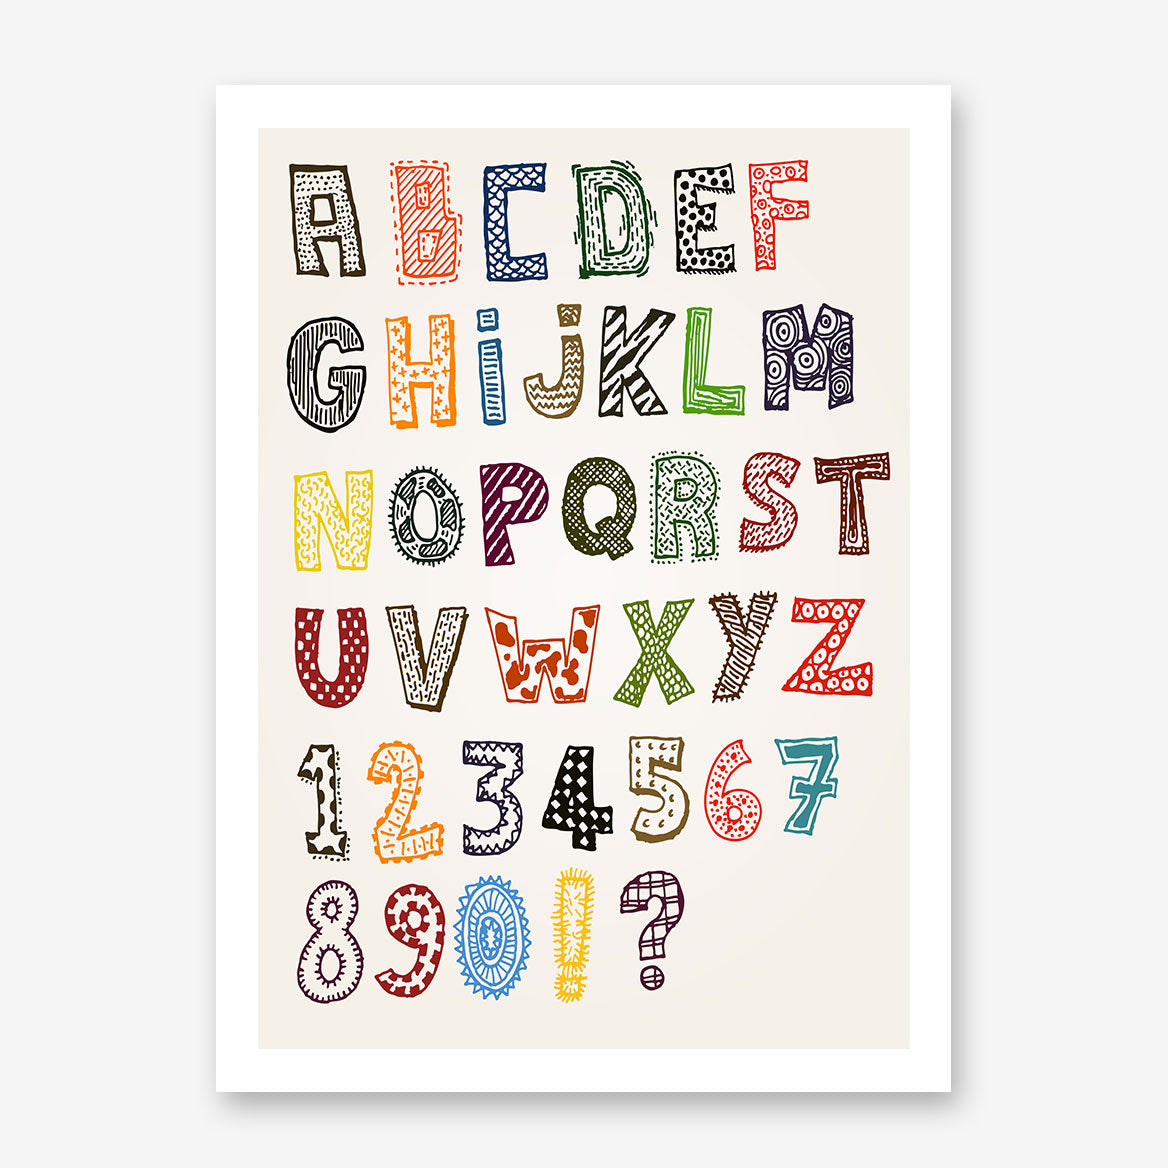 Educational poster print with patterned letters and numbers.